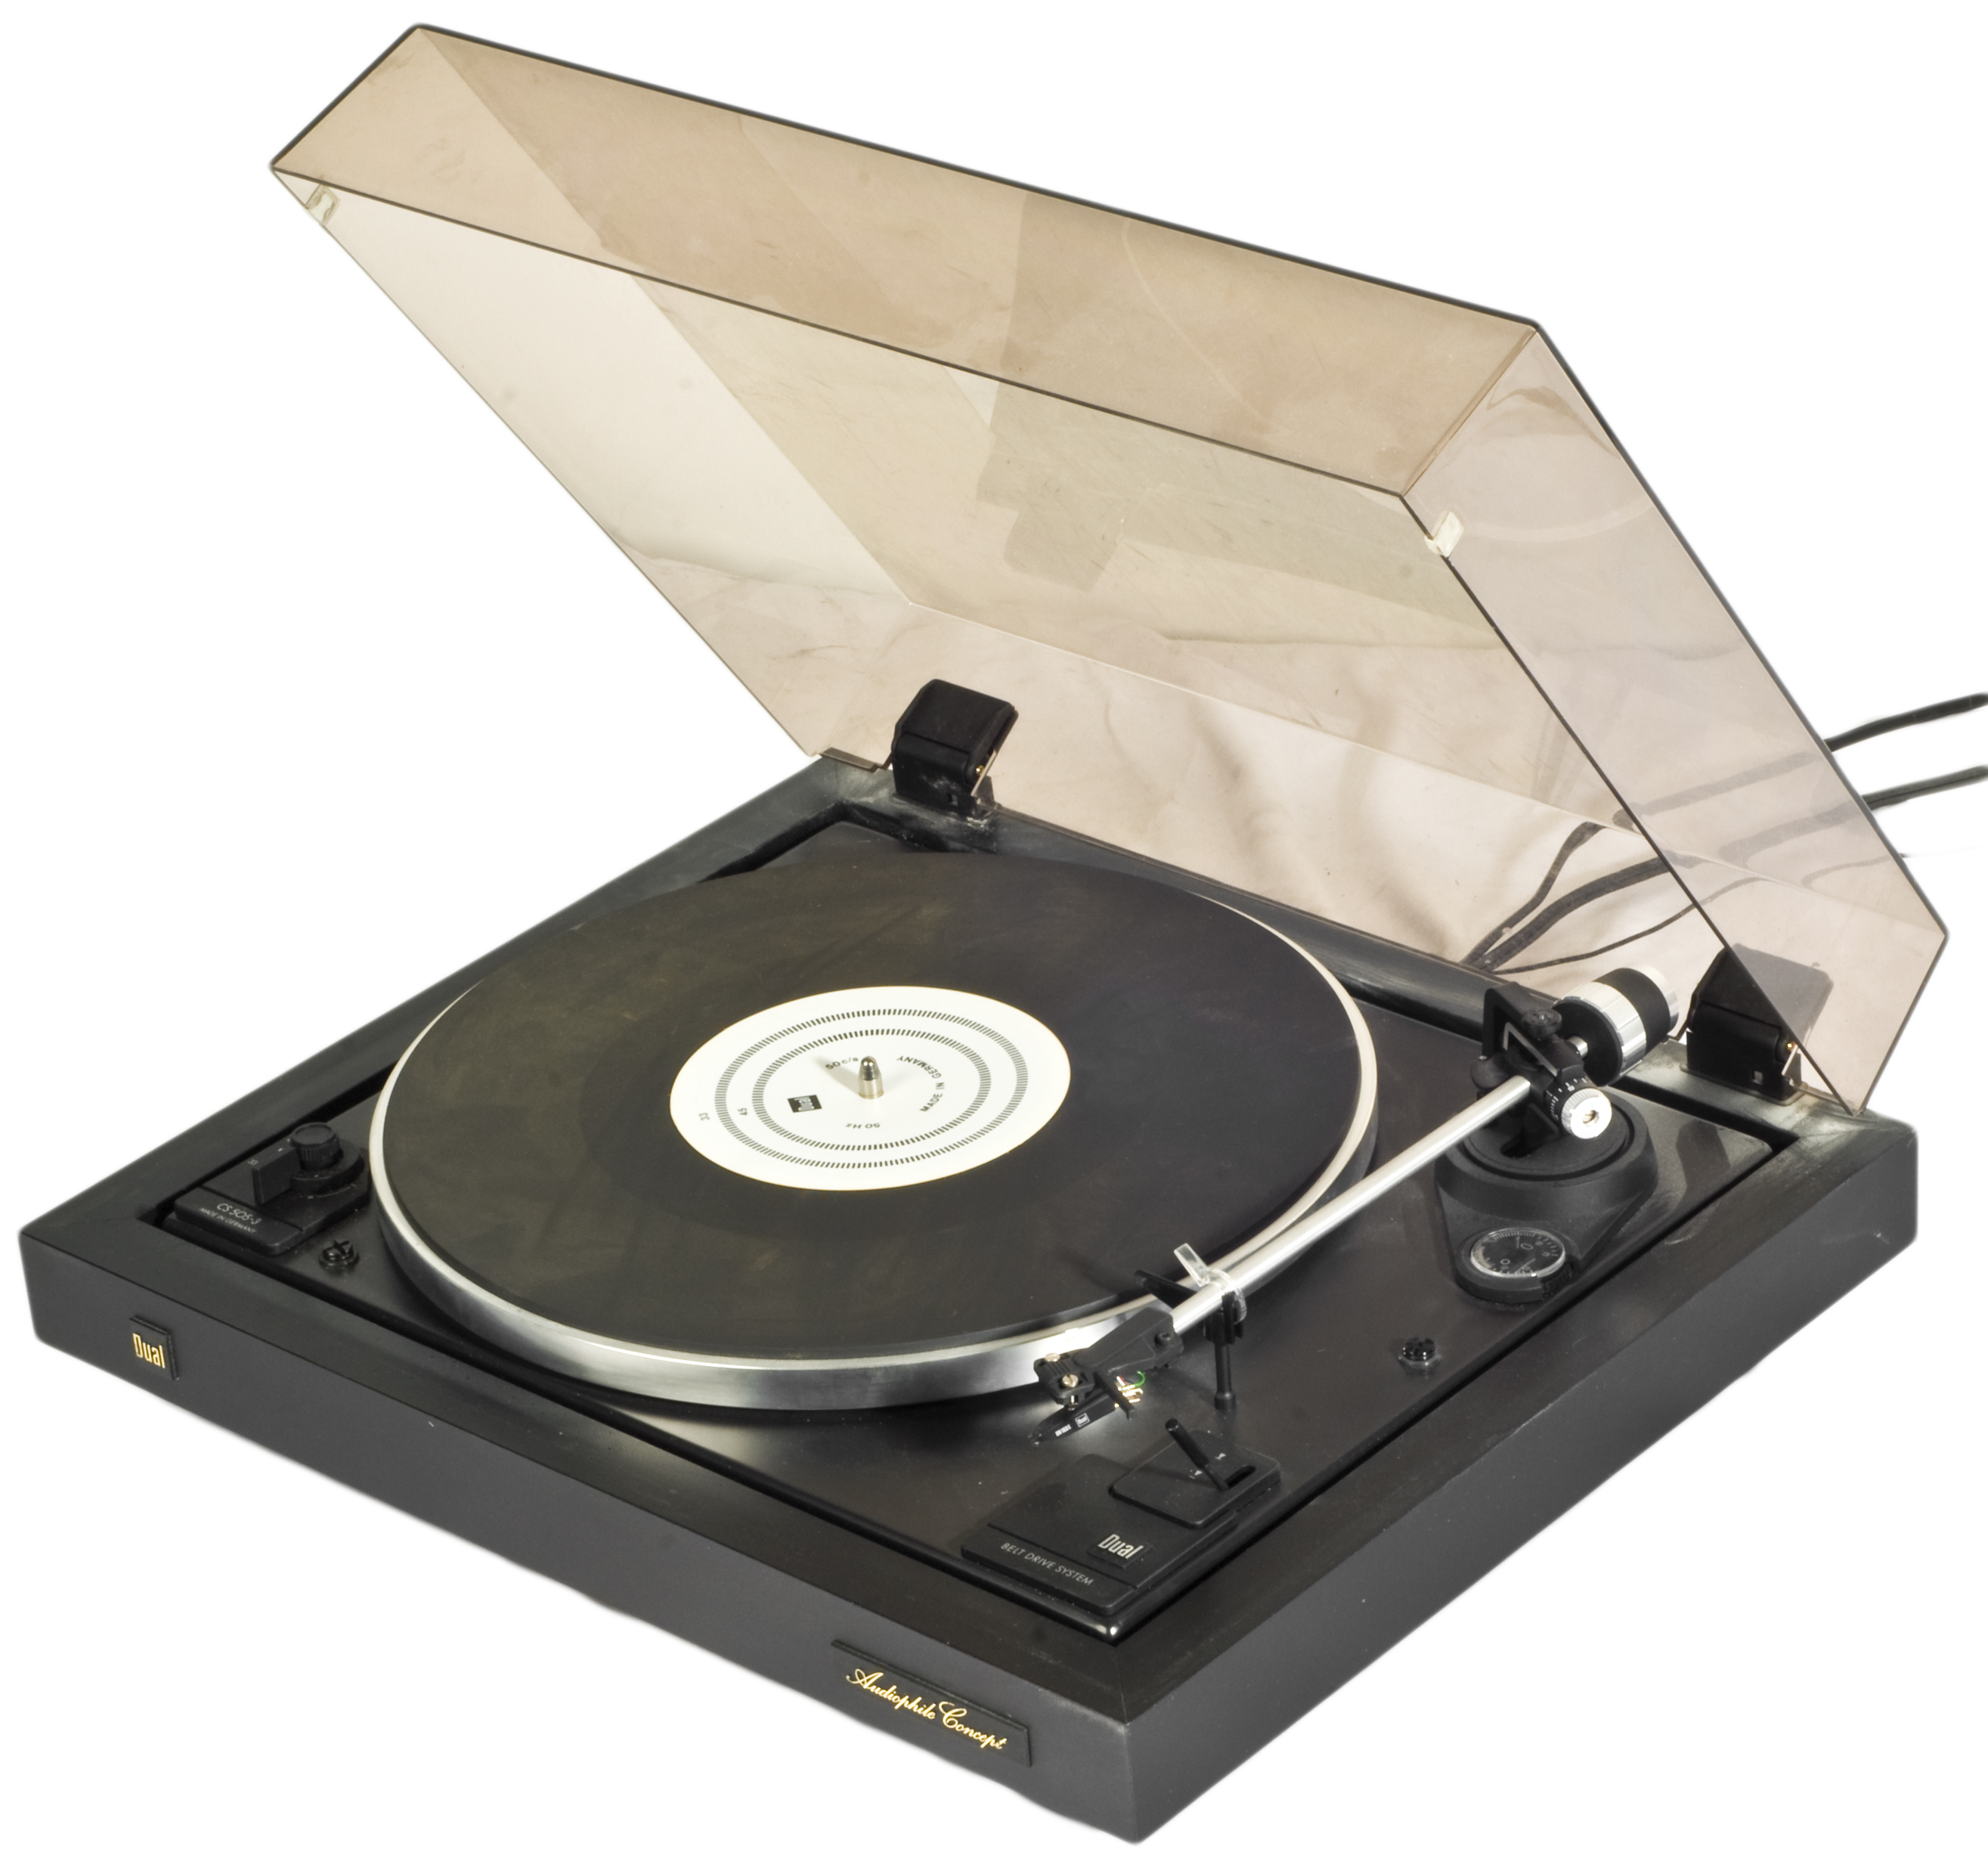 Dual RecordPlayer CS 5053  Classical vinyl record player from the